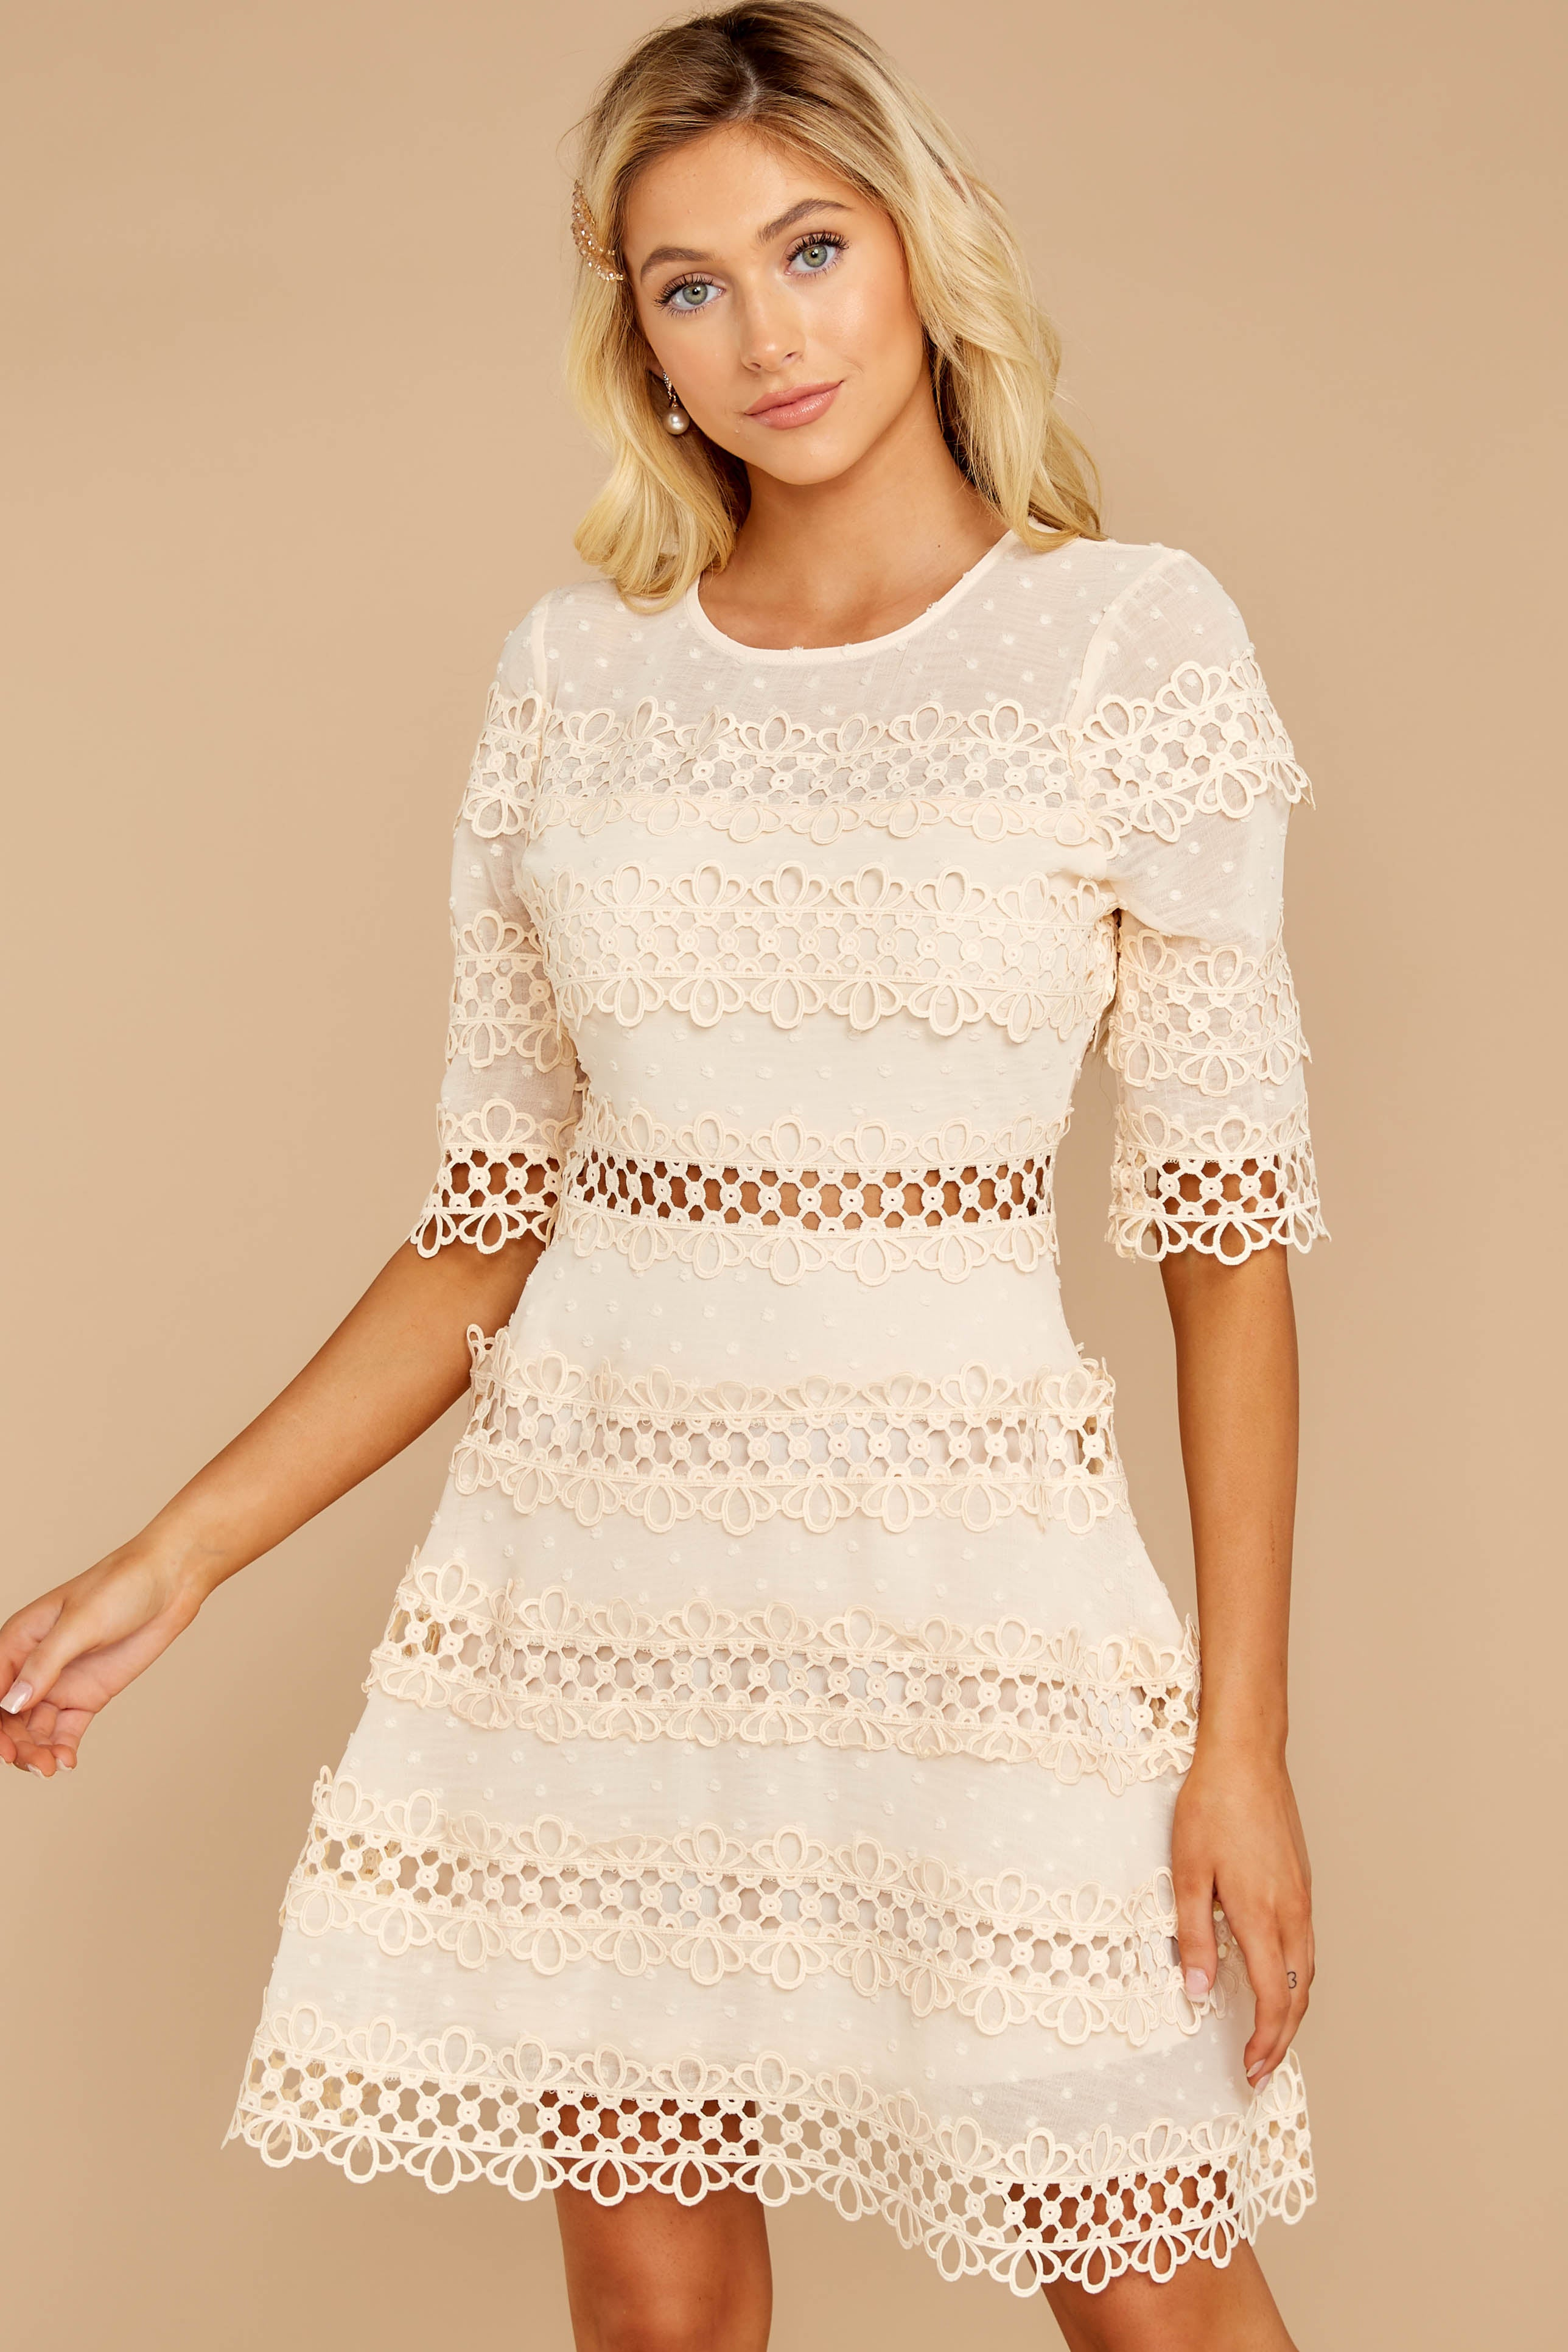 43736711646d1 Poetic Situation Beige Lace Dress